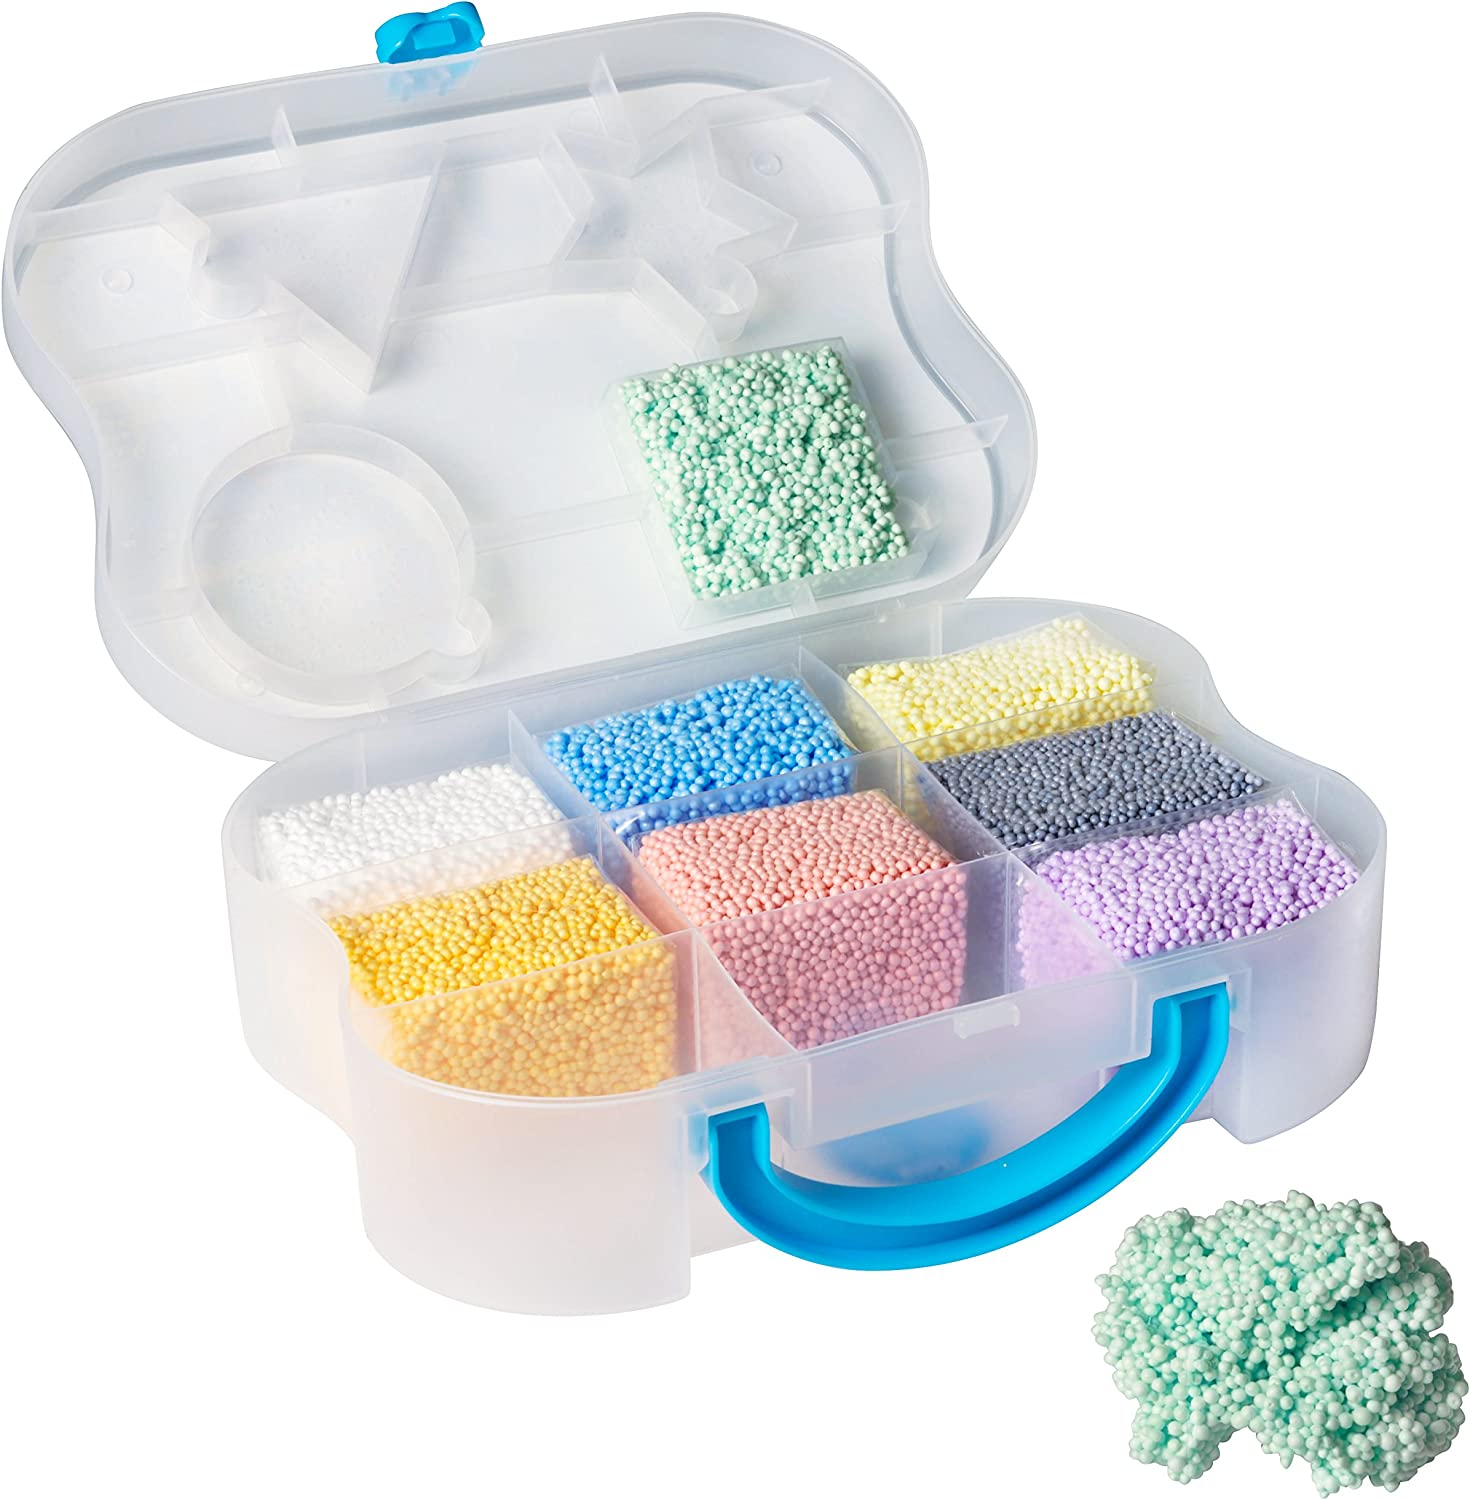 travel playfoam toy for toddlers